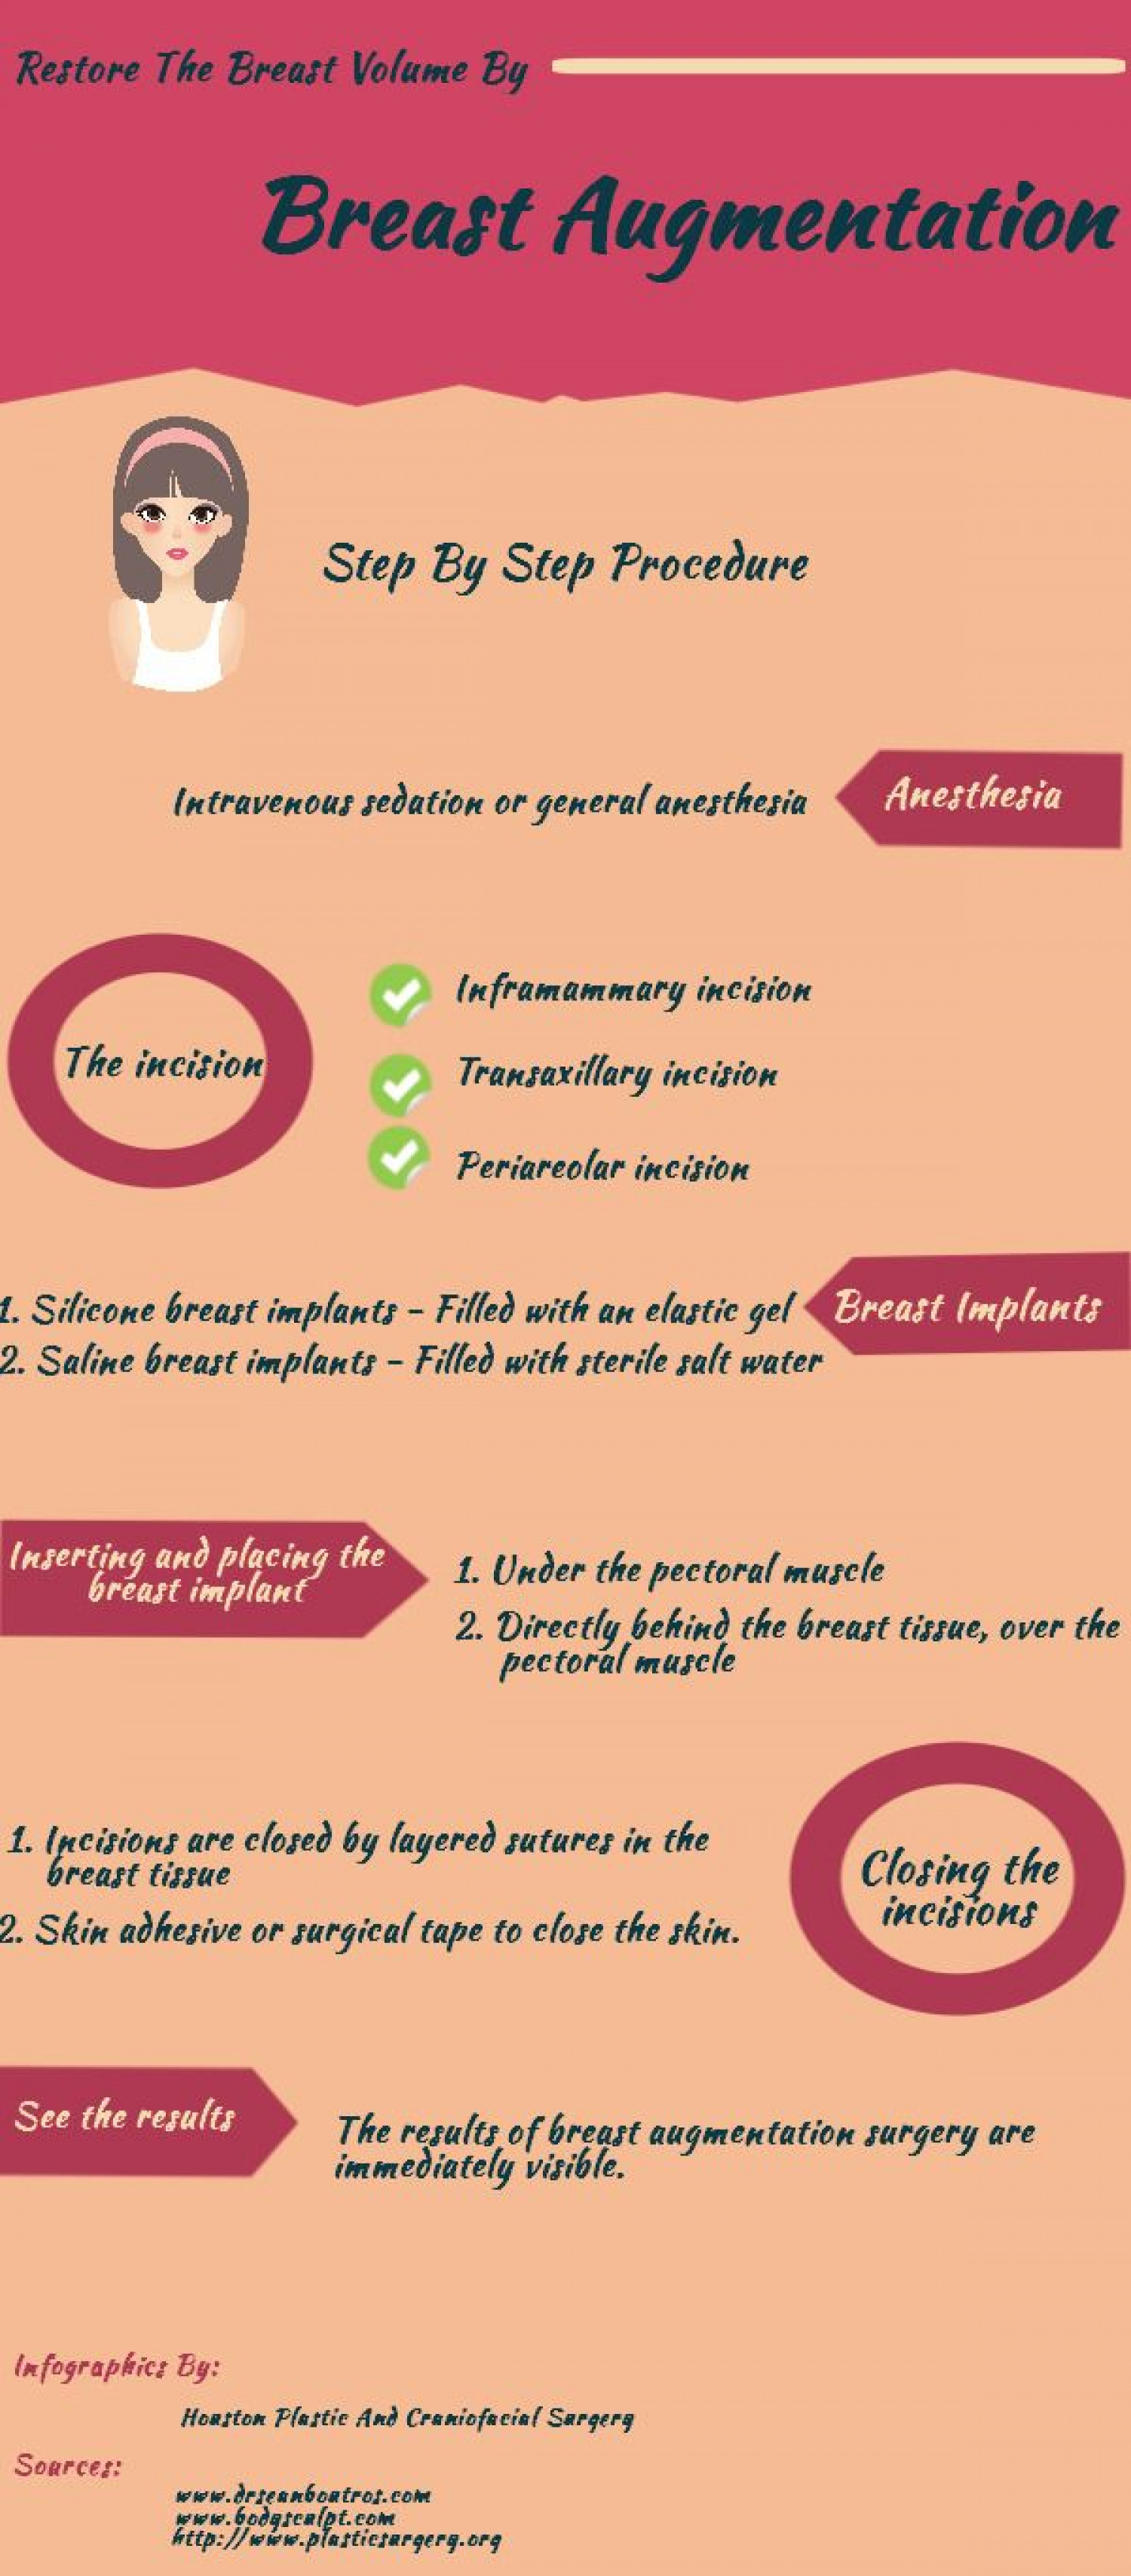 Restore The Breast Volume By Breast Augmentation Infographic